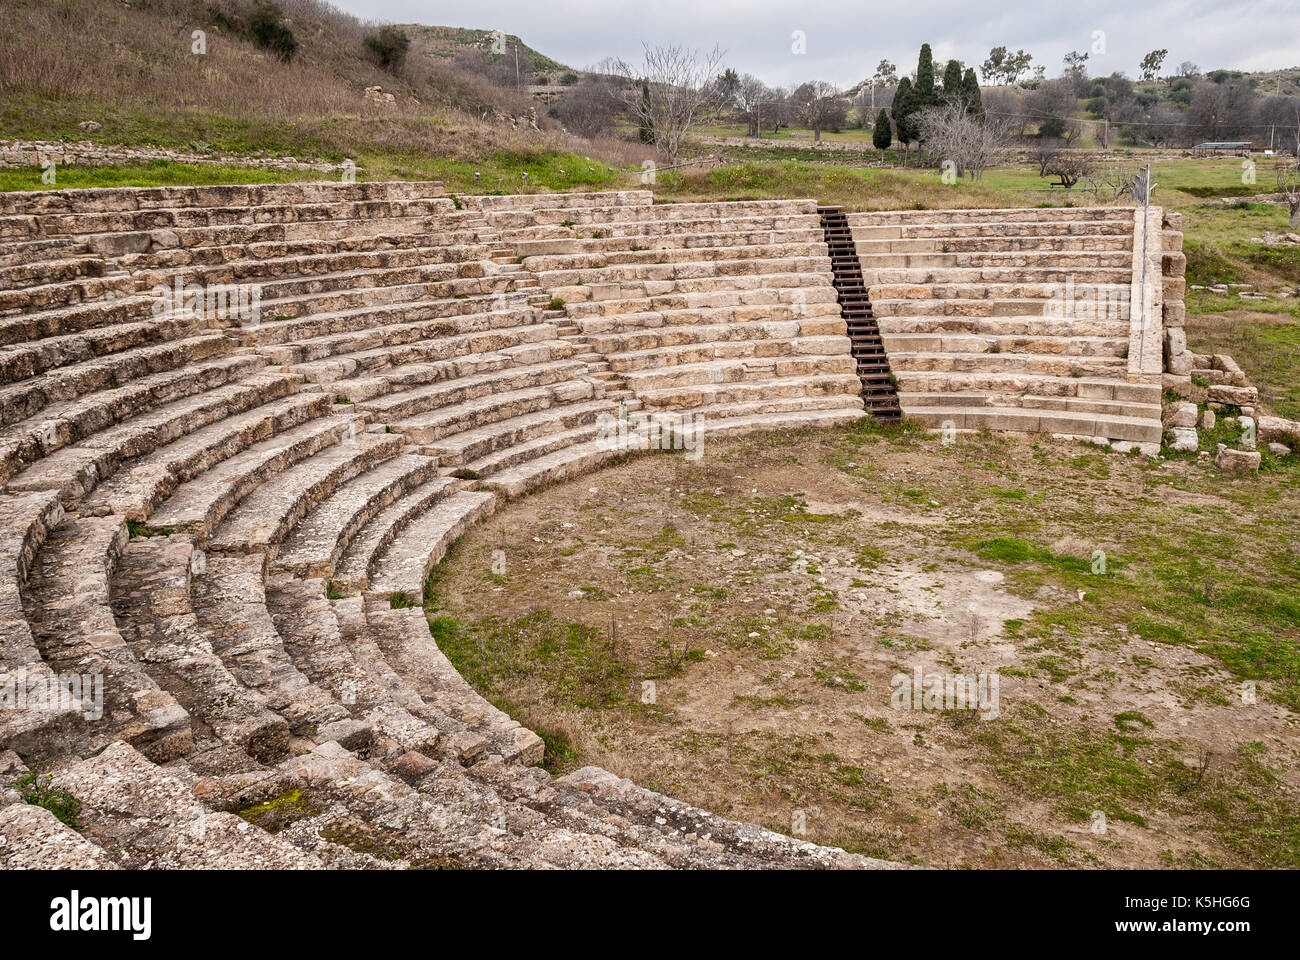 The theater of the ancient greek city of Morgantina, in Sicily - Stock Image